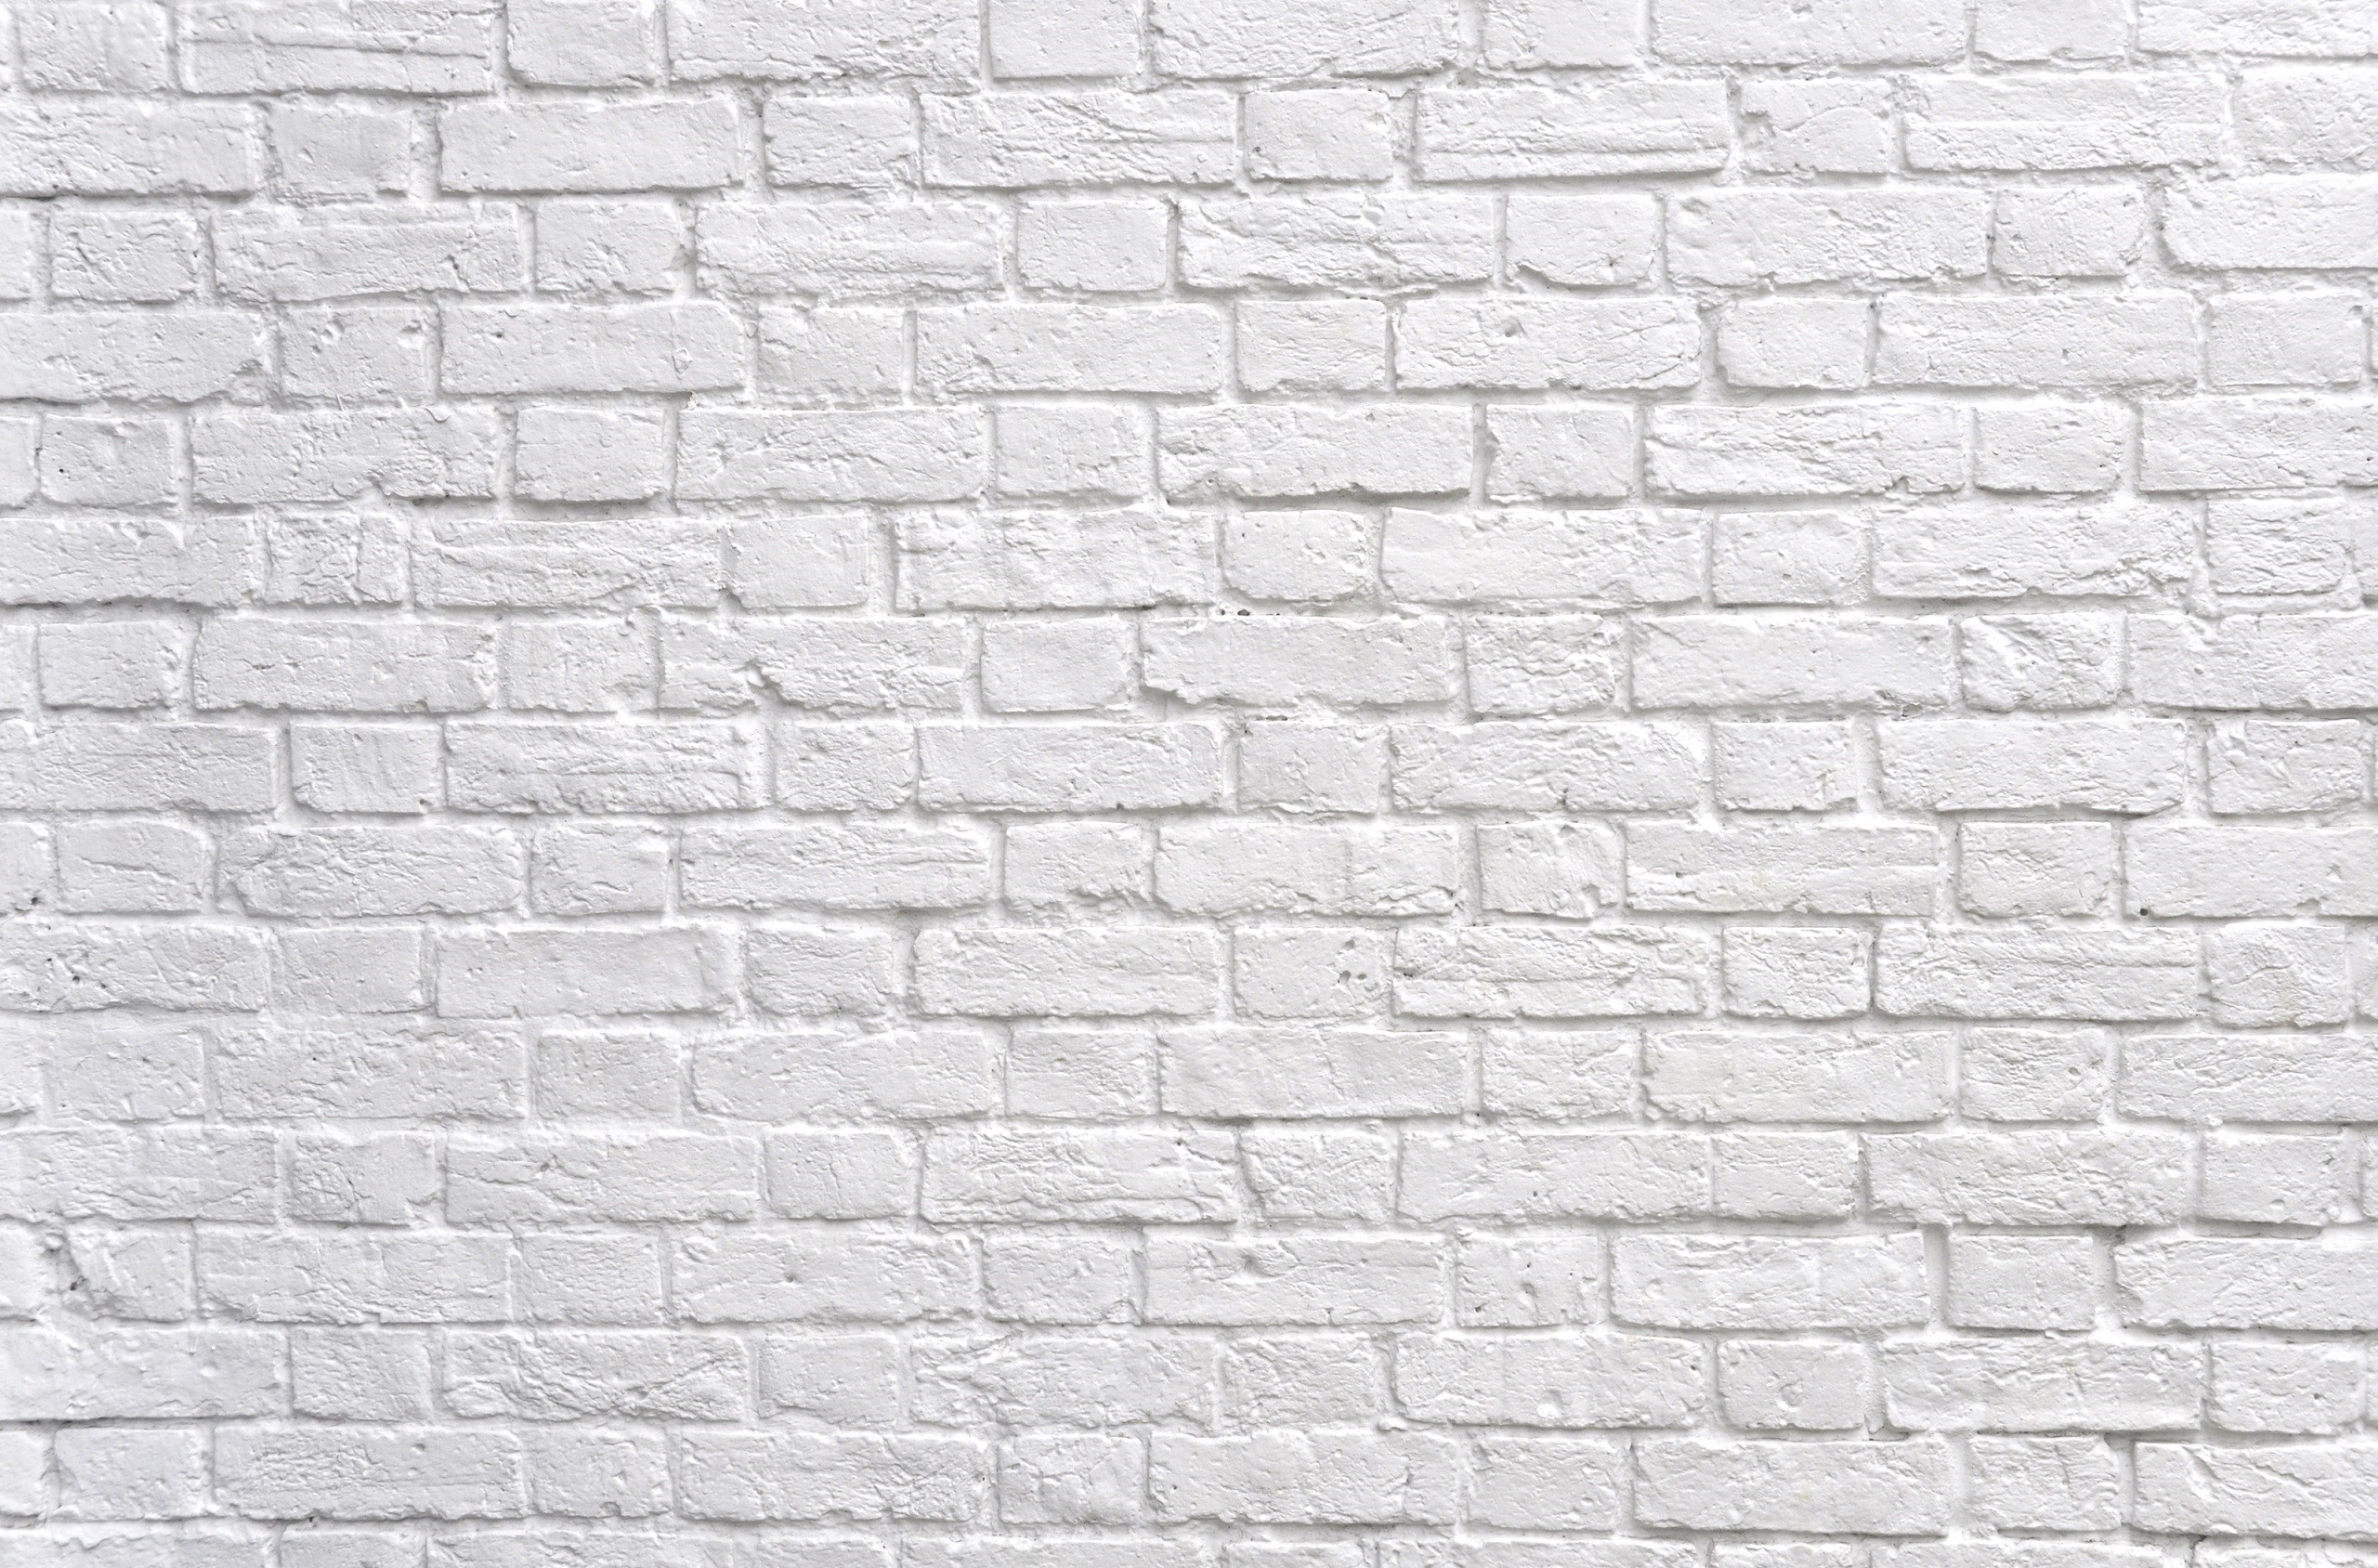 black-and-white-brick-wall-background-white-brick-wall ...